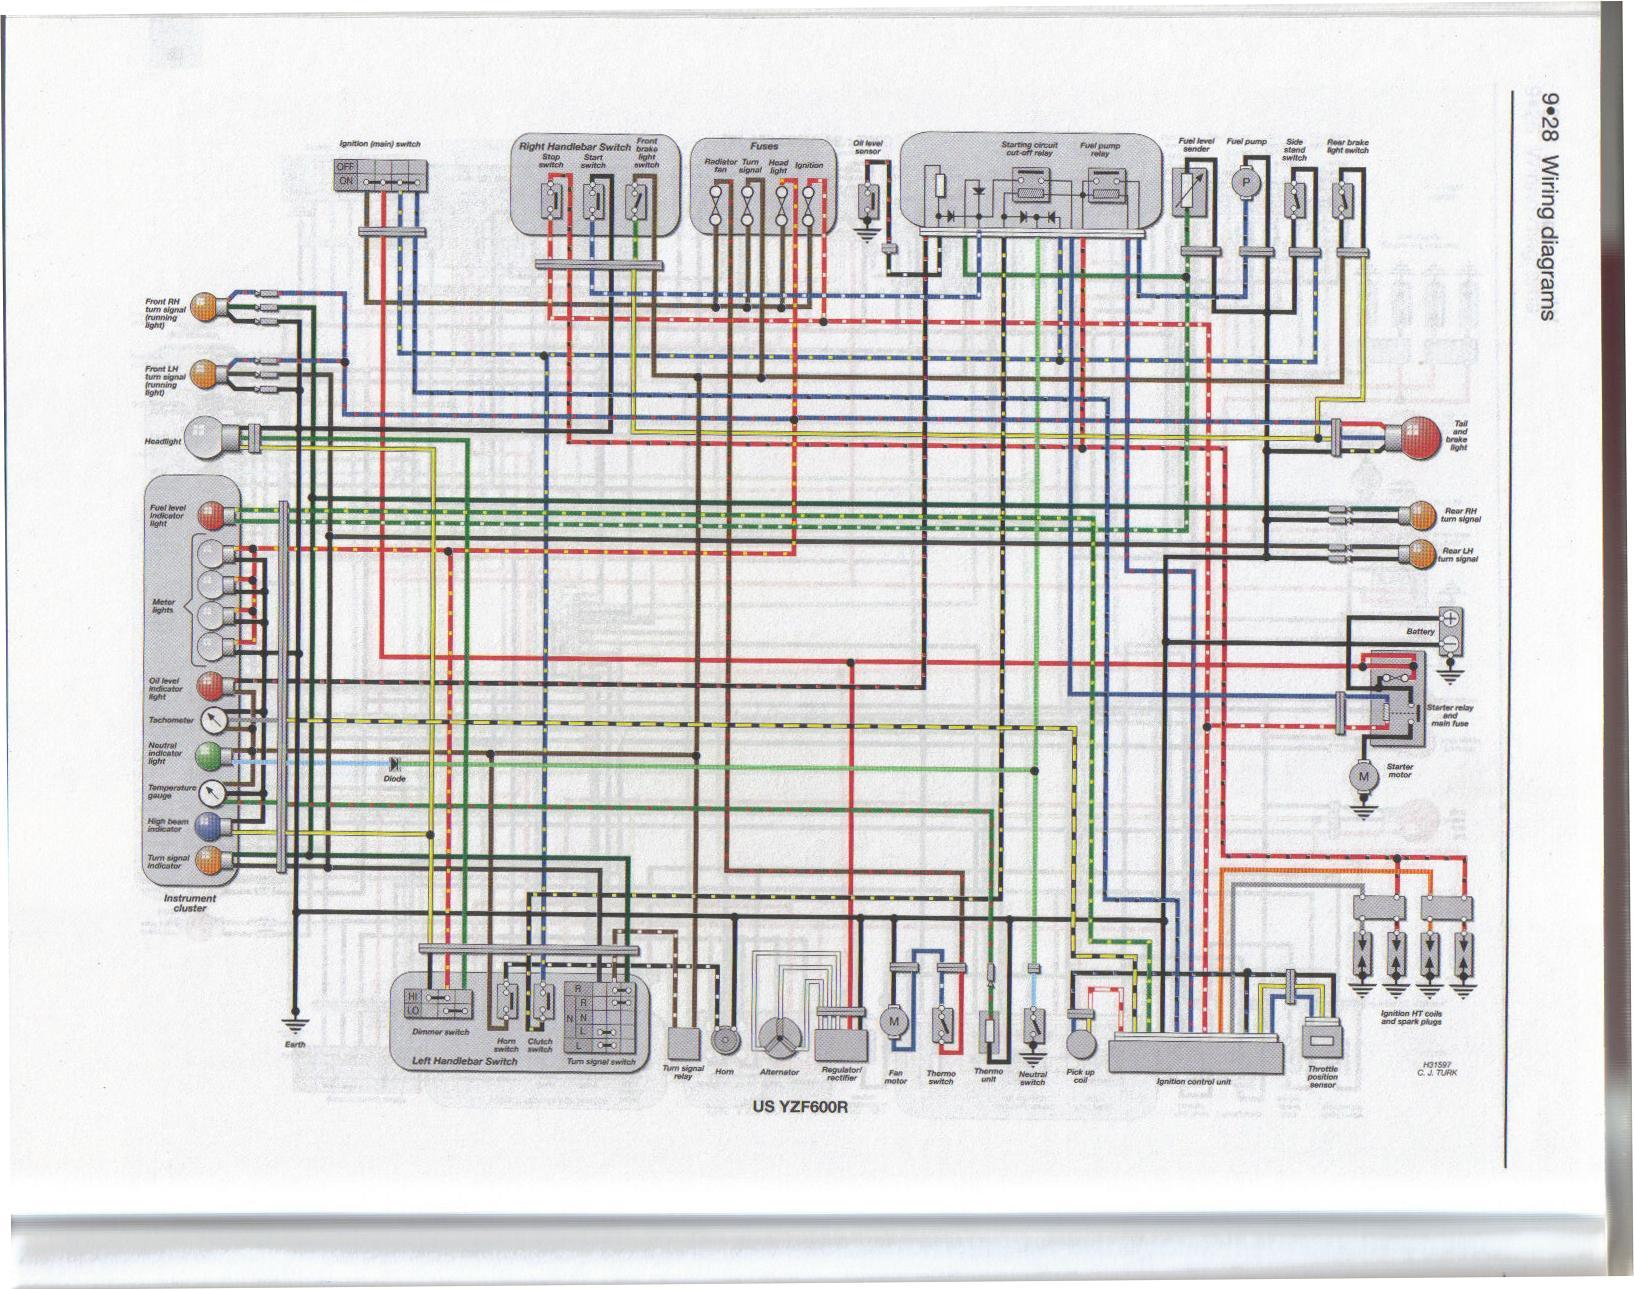 hight resolution of r6 wiring diagram nice place to get wiring diagram u2022 rh usxcleague com 2005 gsxr 600 wiring diagram 2005 yamaha zuma wiring diagram